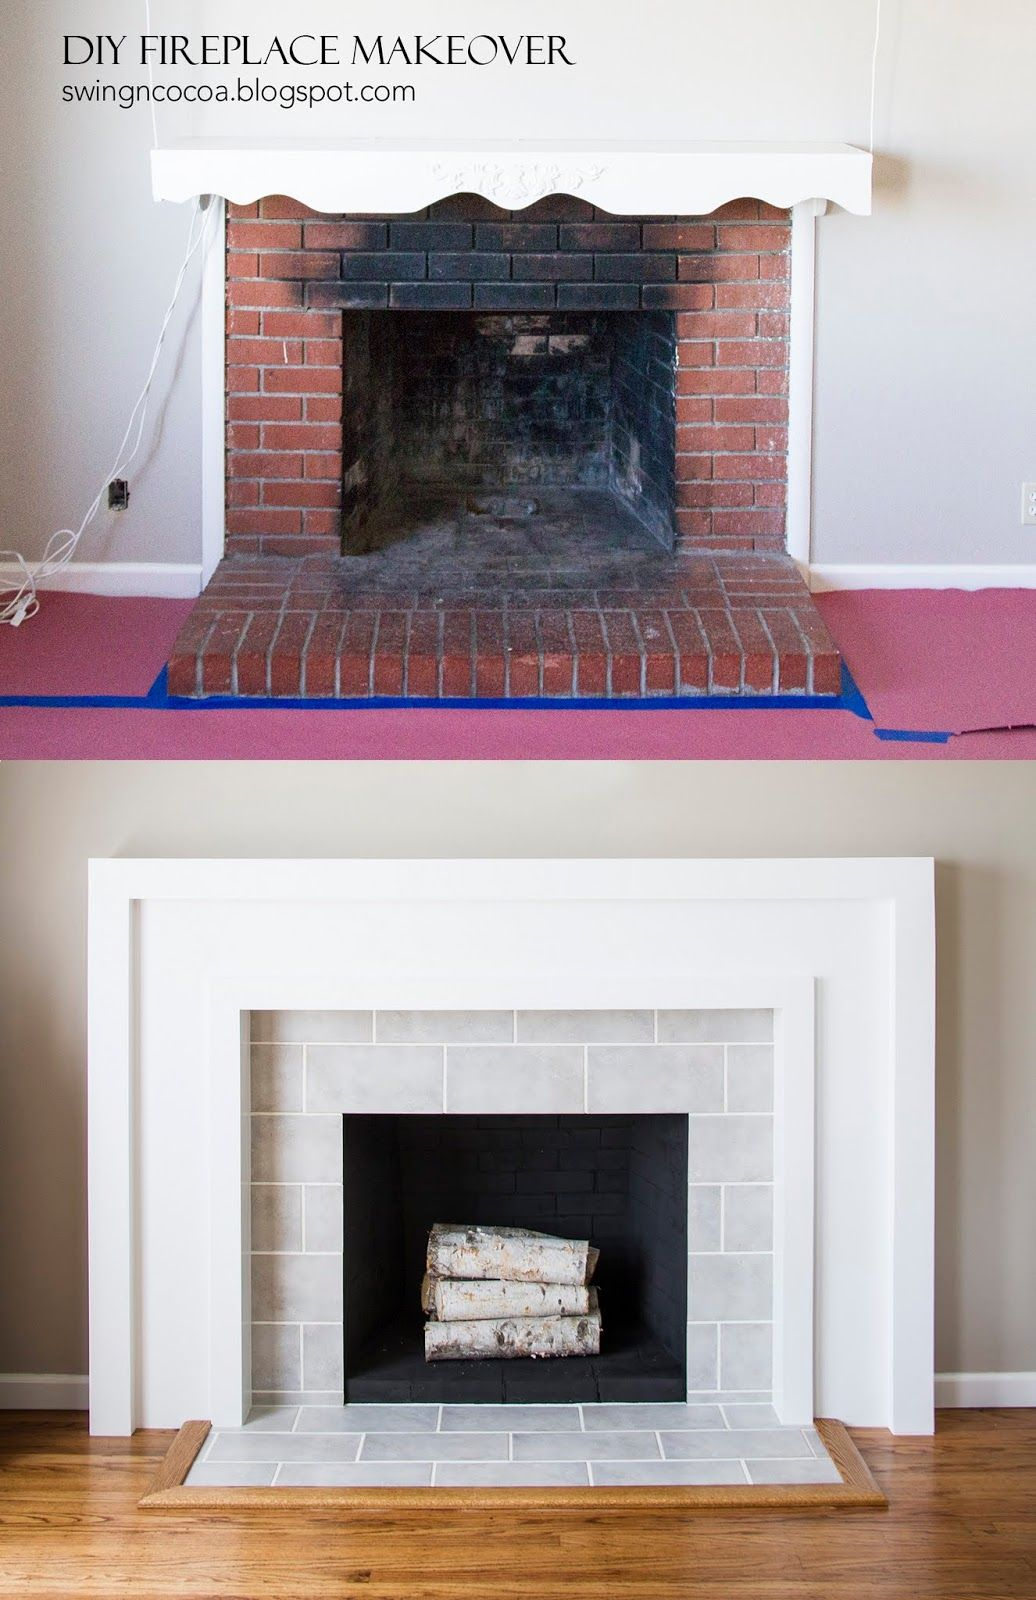 Fireplace Makeover Part 3 Deliciously Done Diy Fireplace Makeover Fireplace Makeover Diy Remodel